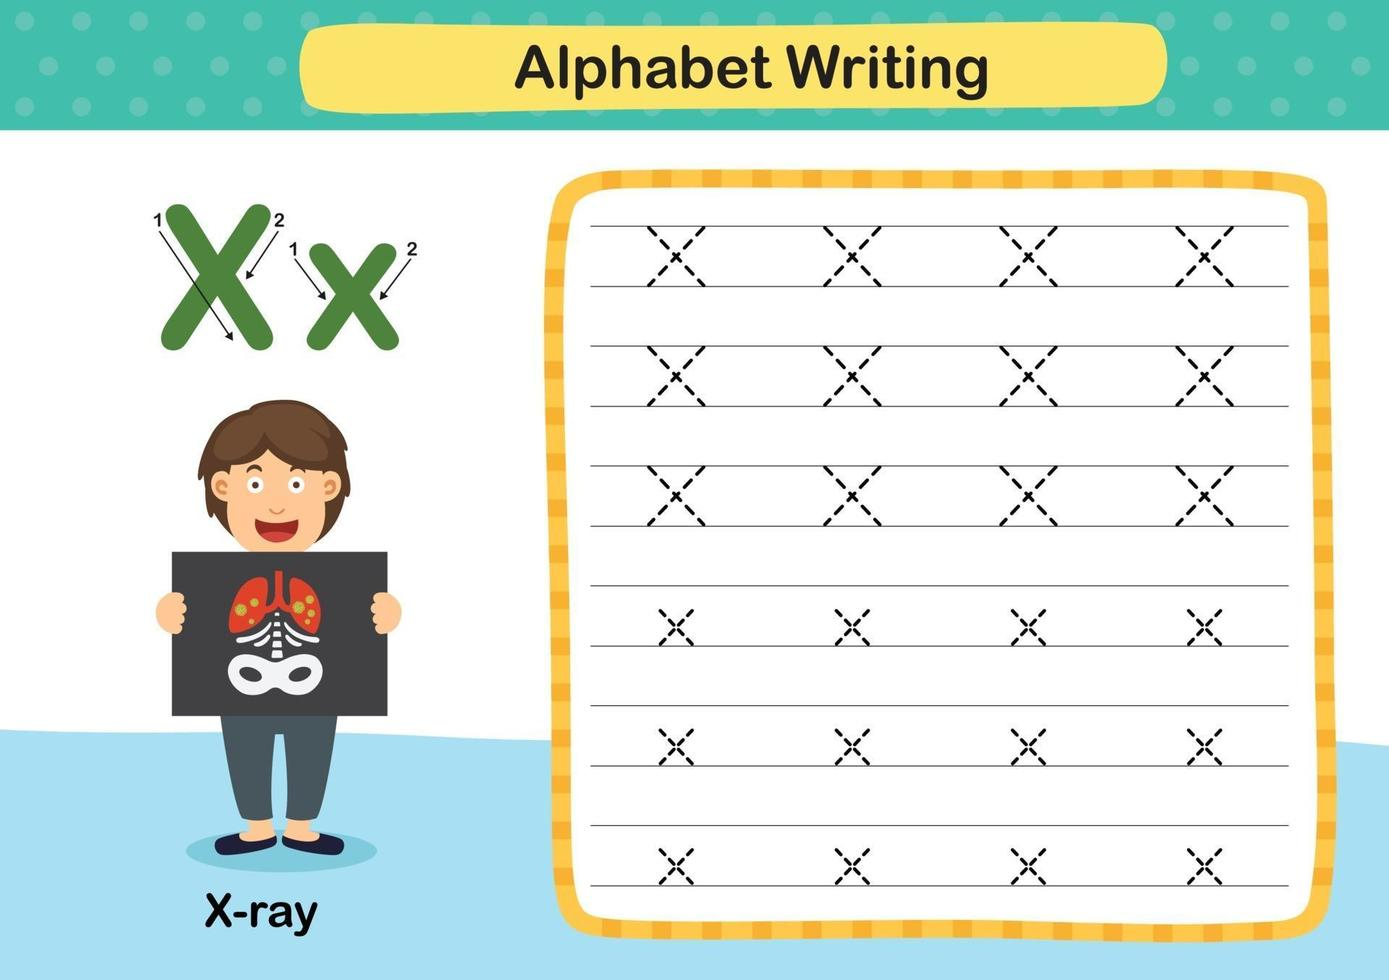 Alphabet Letter X-X ray exercise with cartoon vocabulary illustration, vector